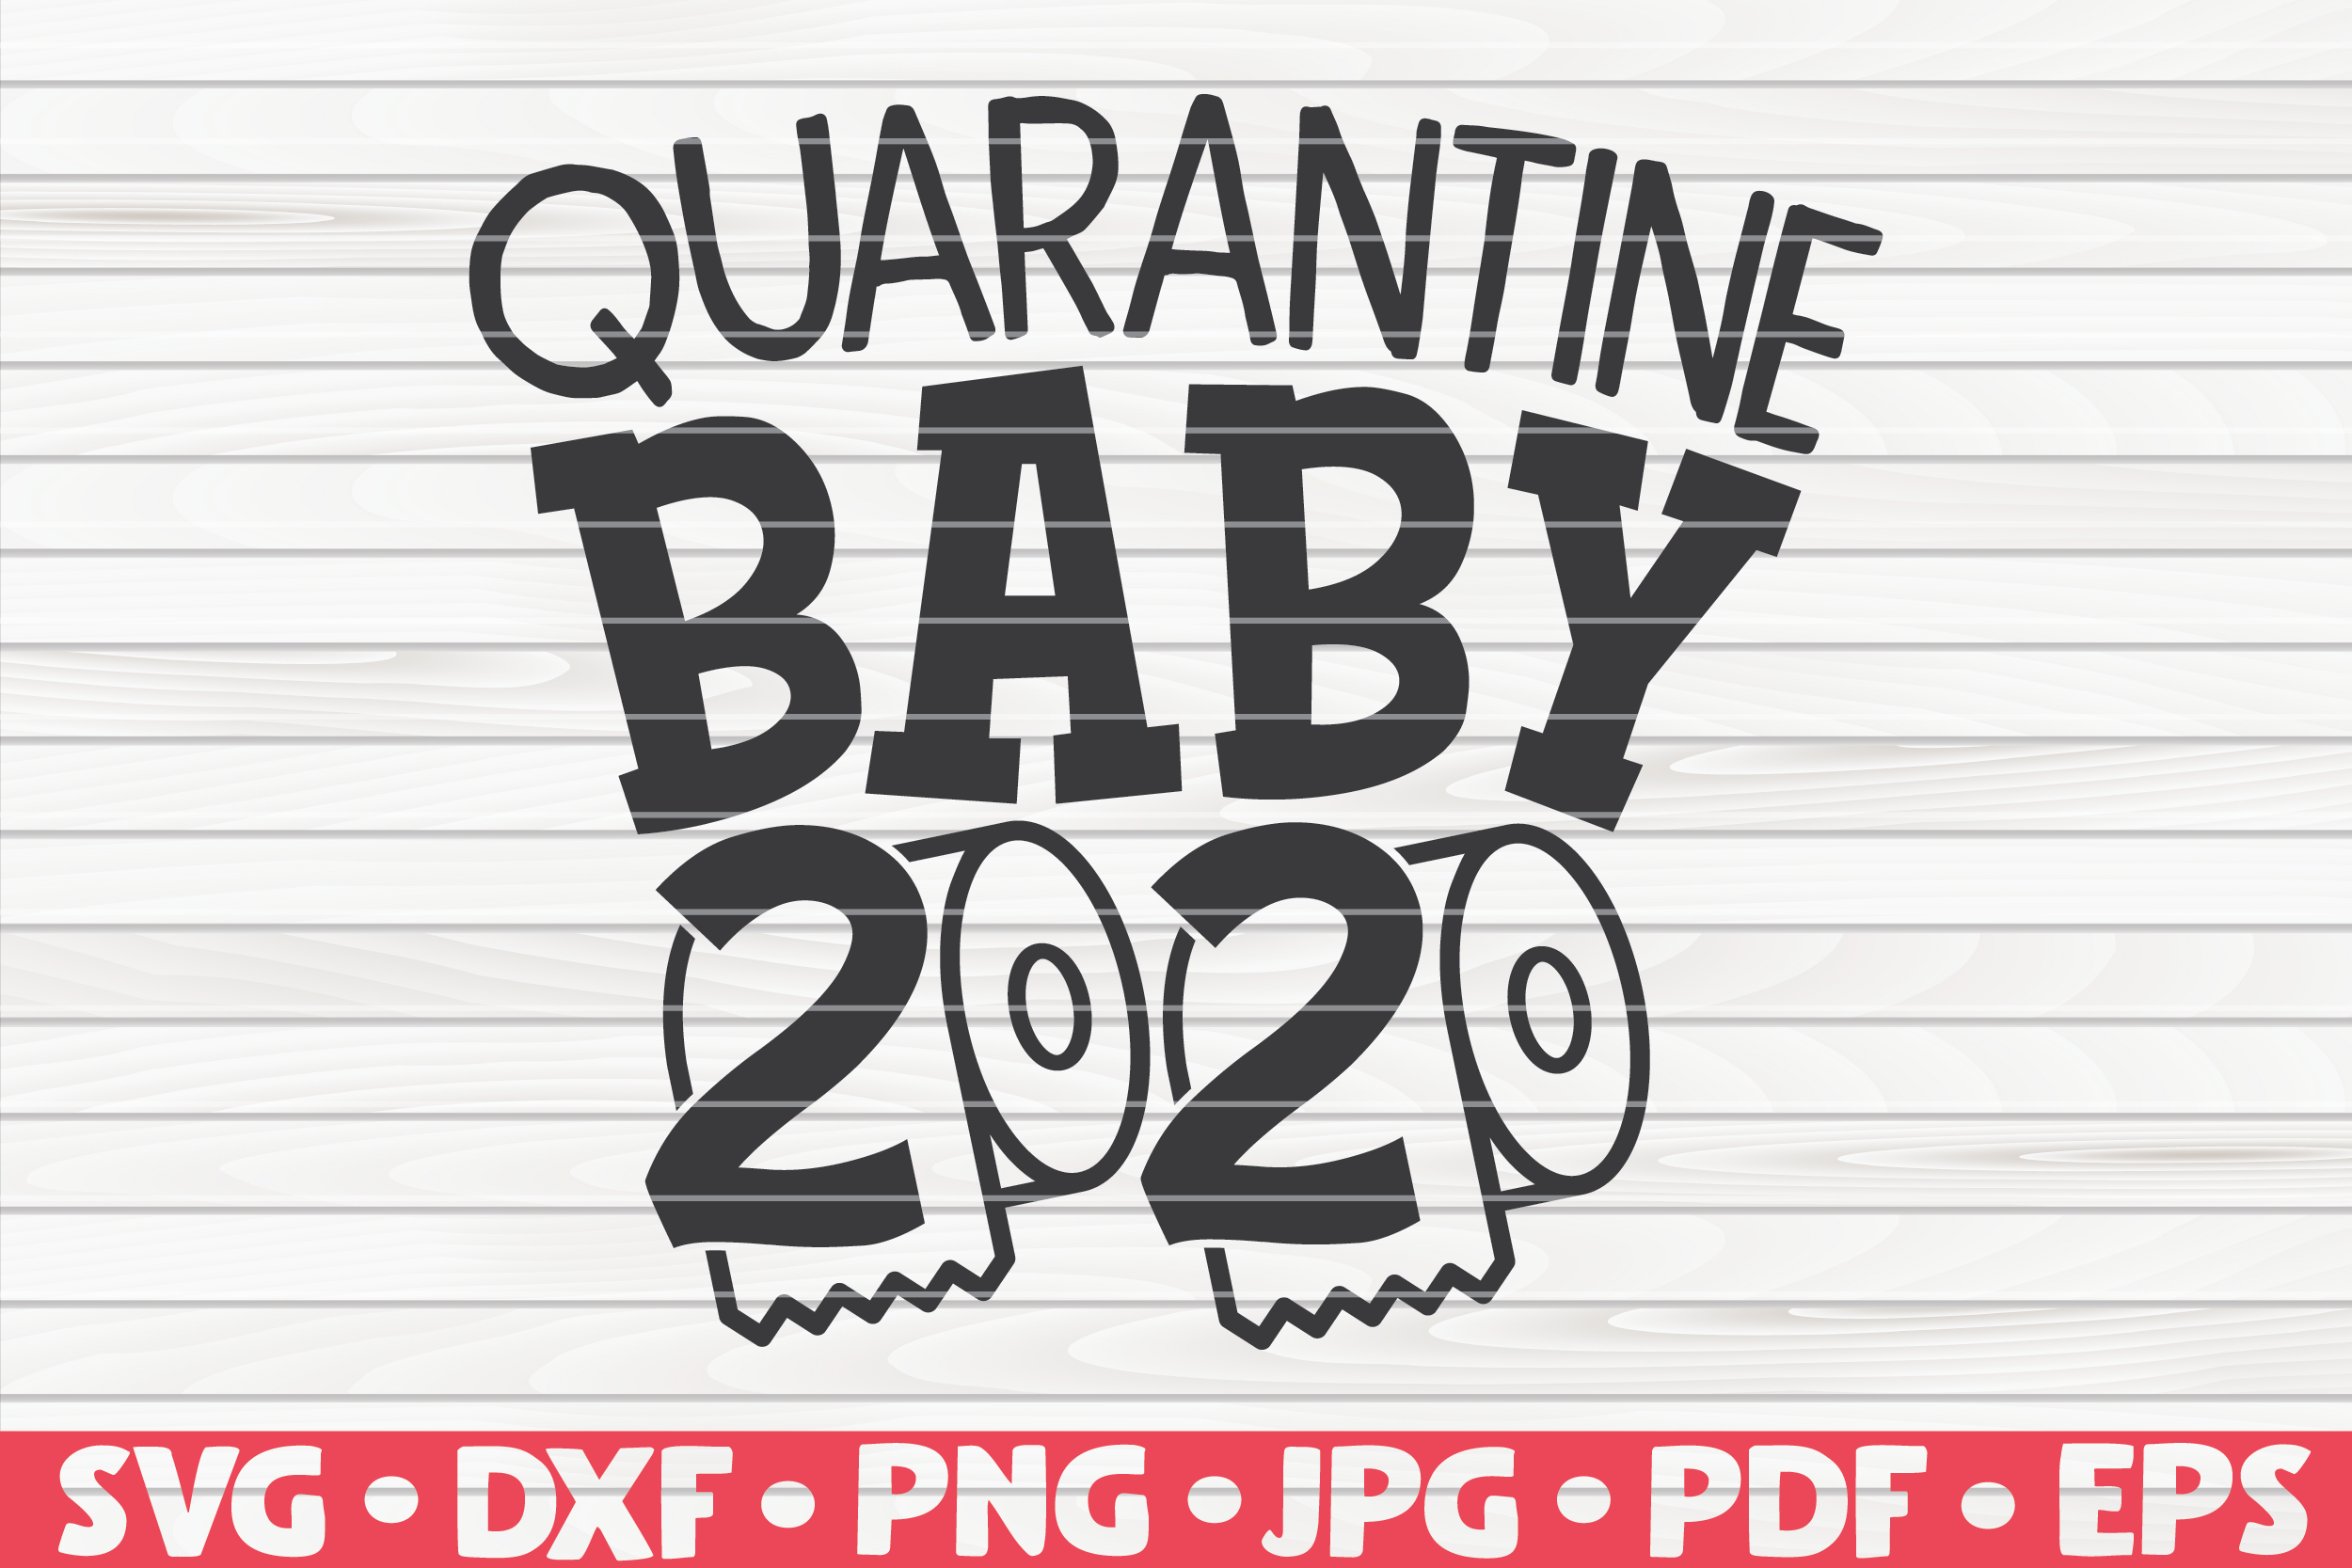 Quarantine Baby 2020 Graphic By Mihaibadea95 Creative Fabrica